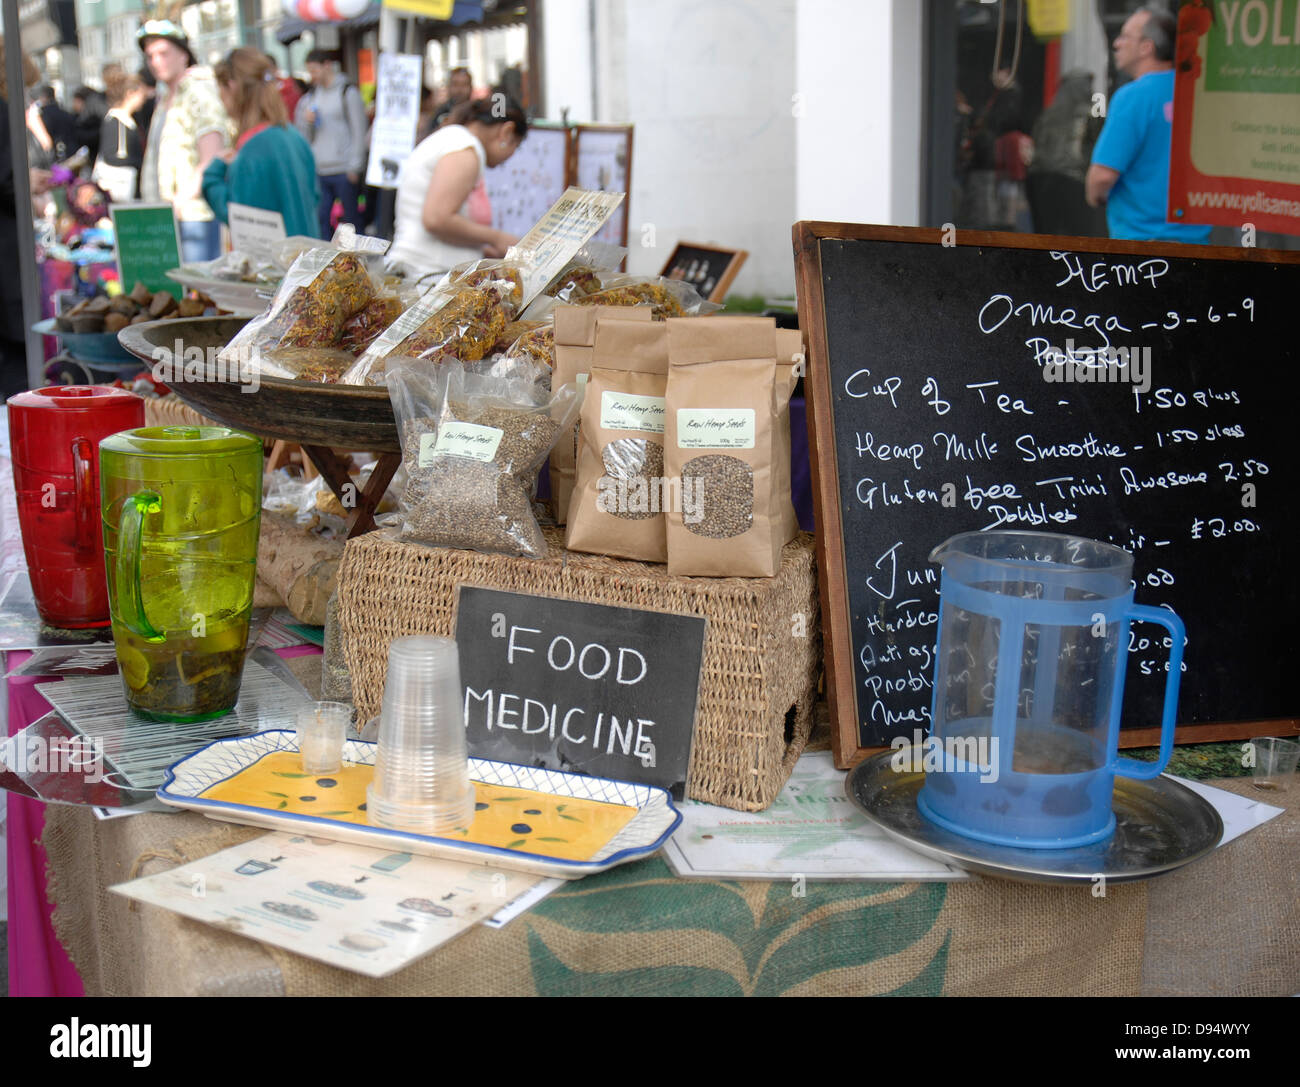 Nuts, seeds & dried fruit stall - Stock Image